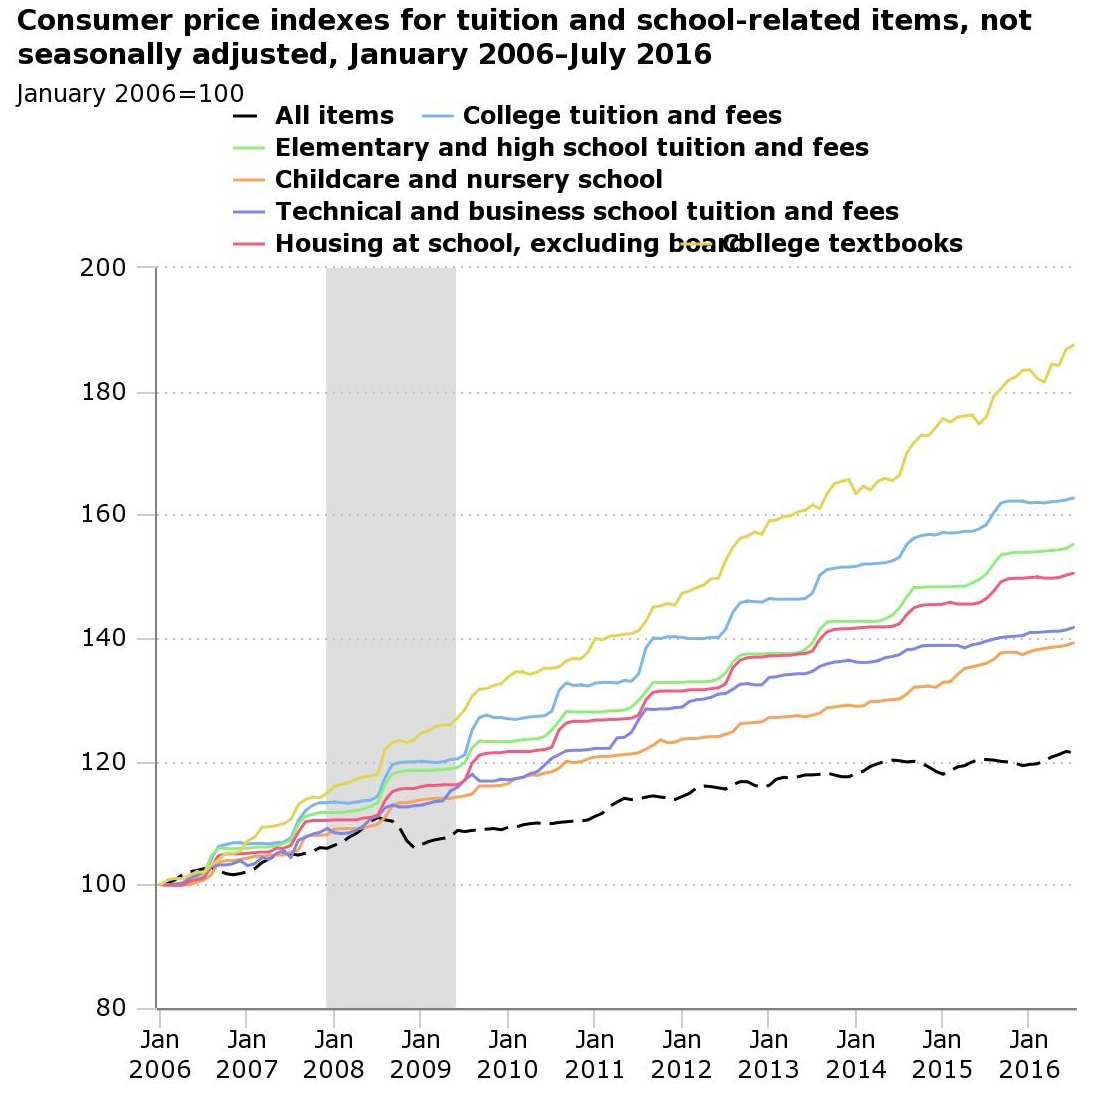 consumer price indexes for tuition and school-relation items, January 2006 to July 2016